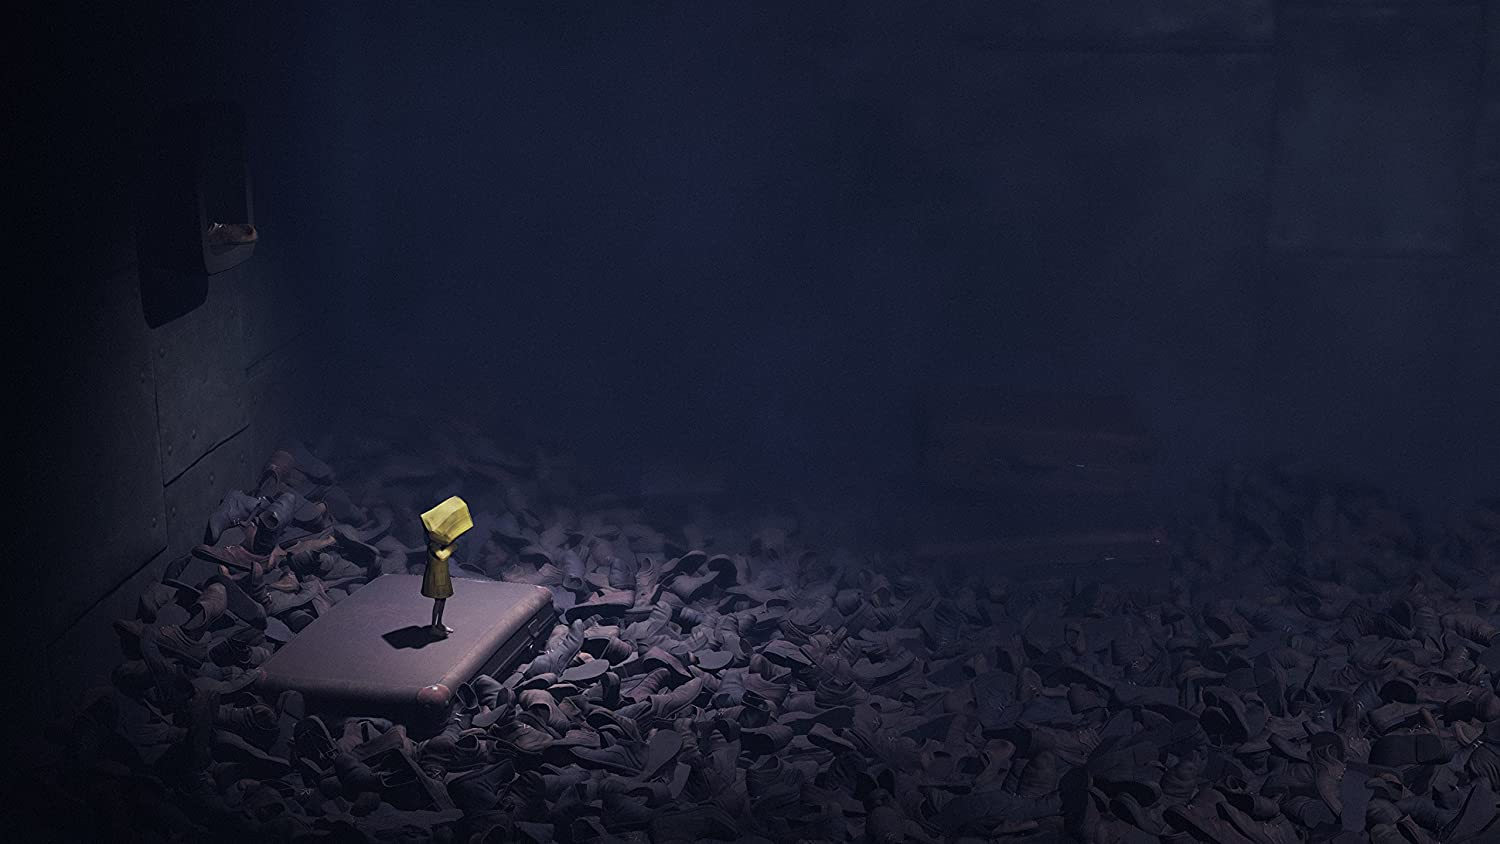 Amazoncom Little Nightmares Six Edition PlayStation Video - 27 places stuff nightmares made